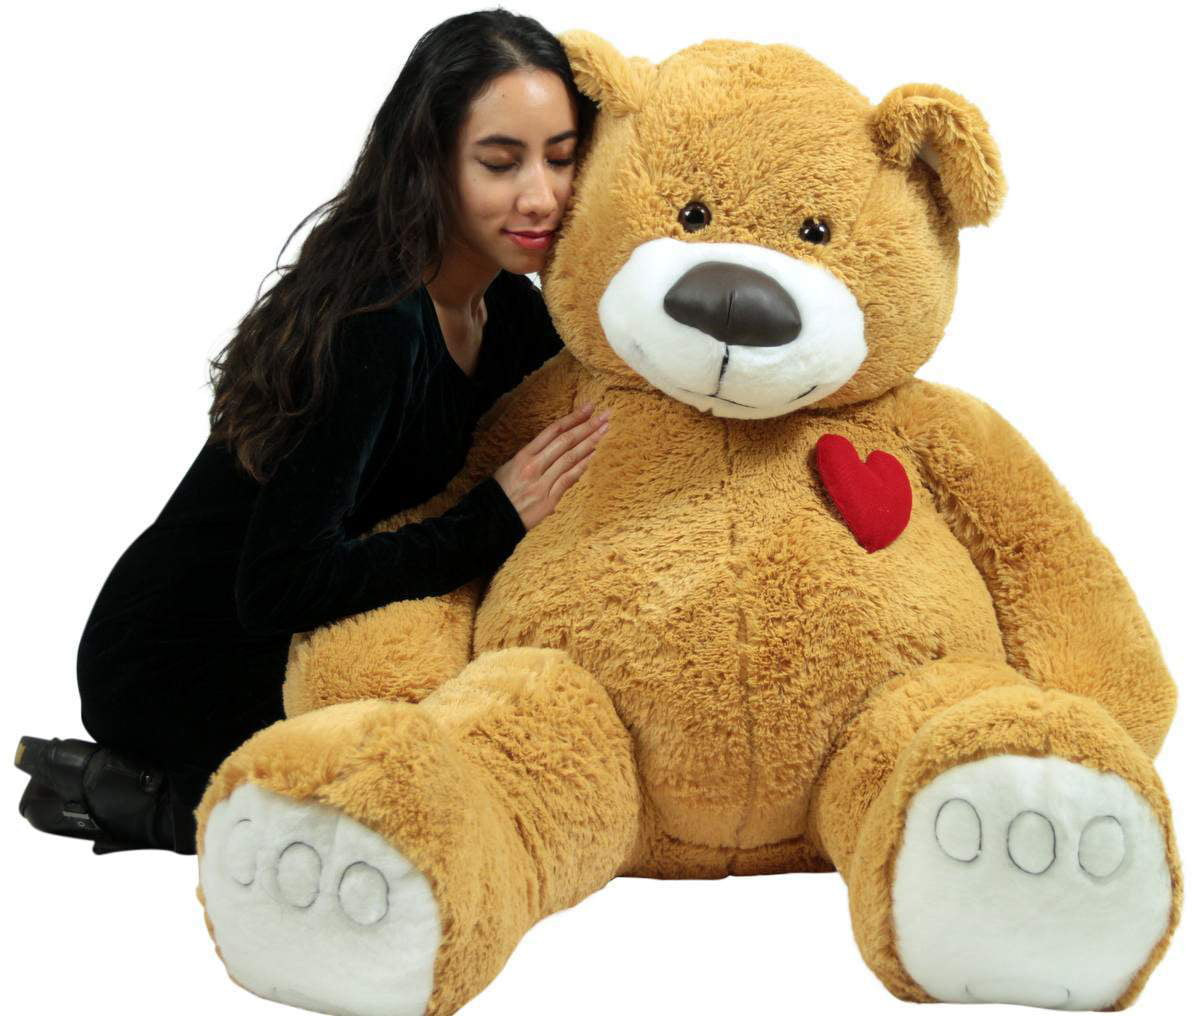 Giant Teddy Bear 57 Inch Soft Huge Plush Animal, Heart on Chest to Express Love by BigPlush